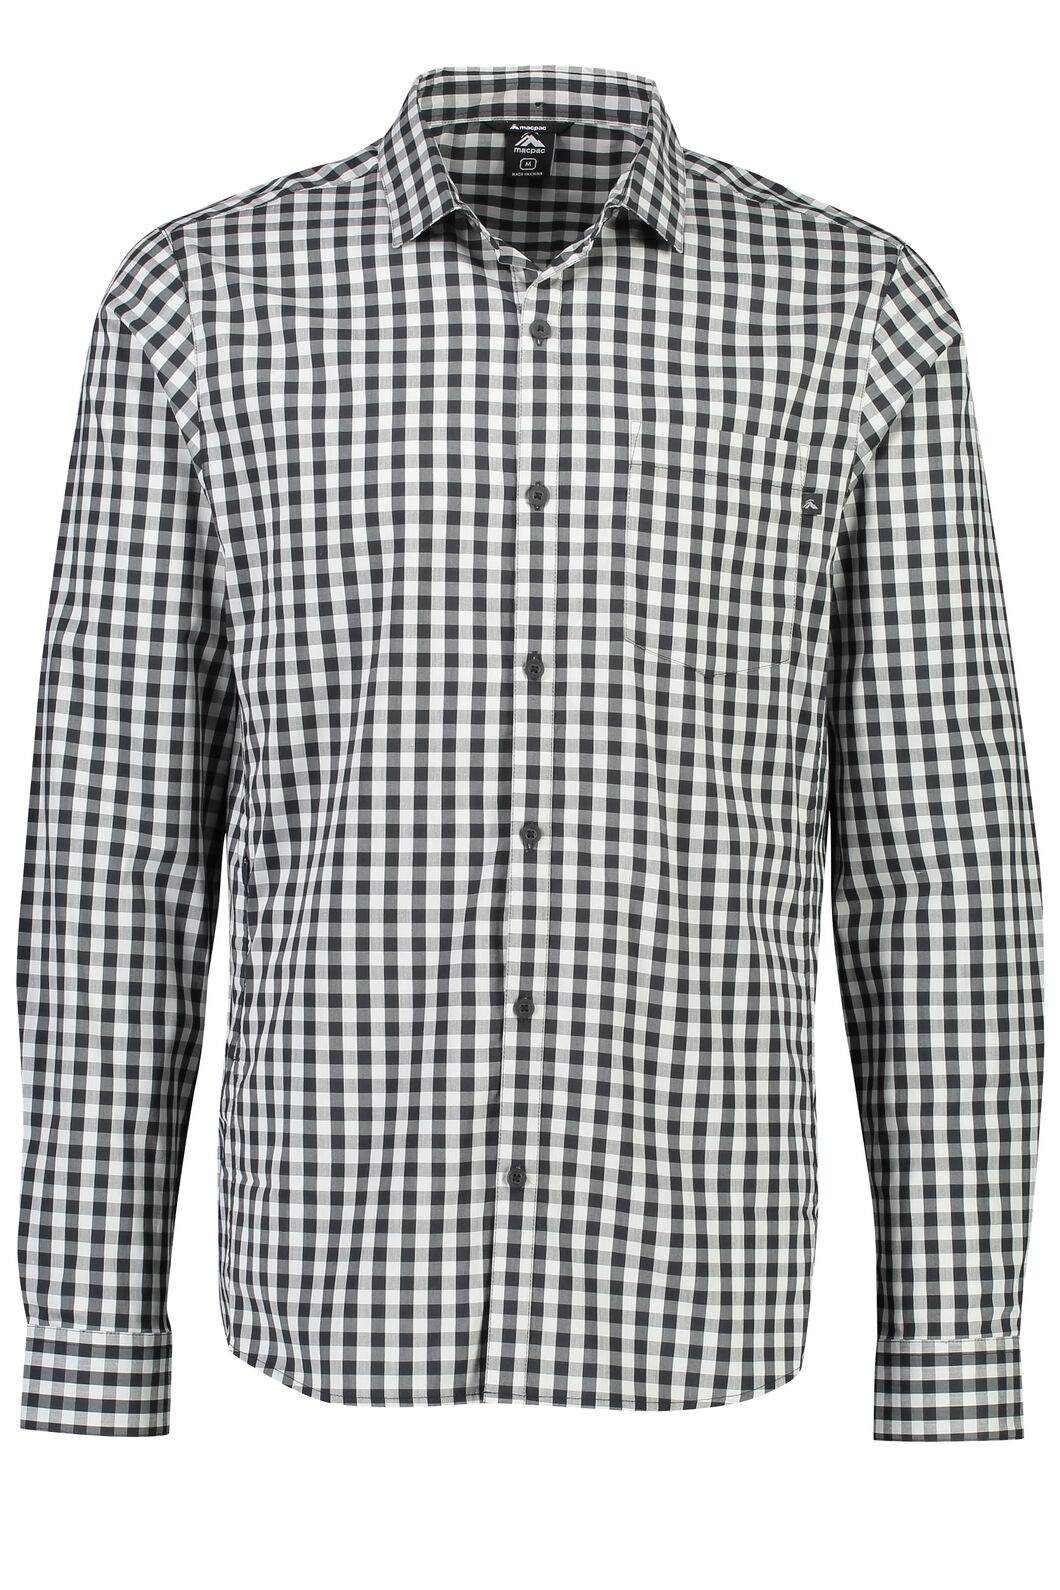 Crossroad Long Sleeve Shirt - Men's, Anthracite, hi-res